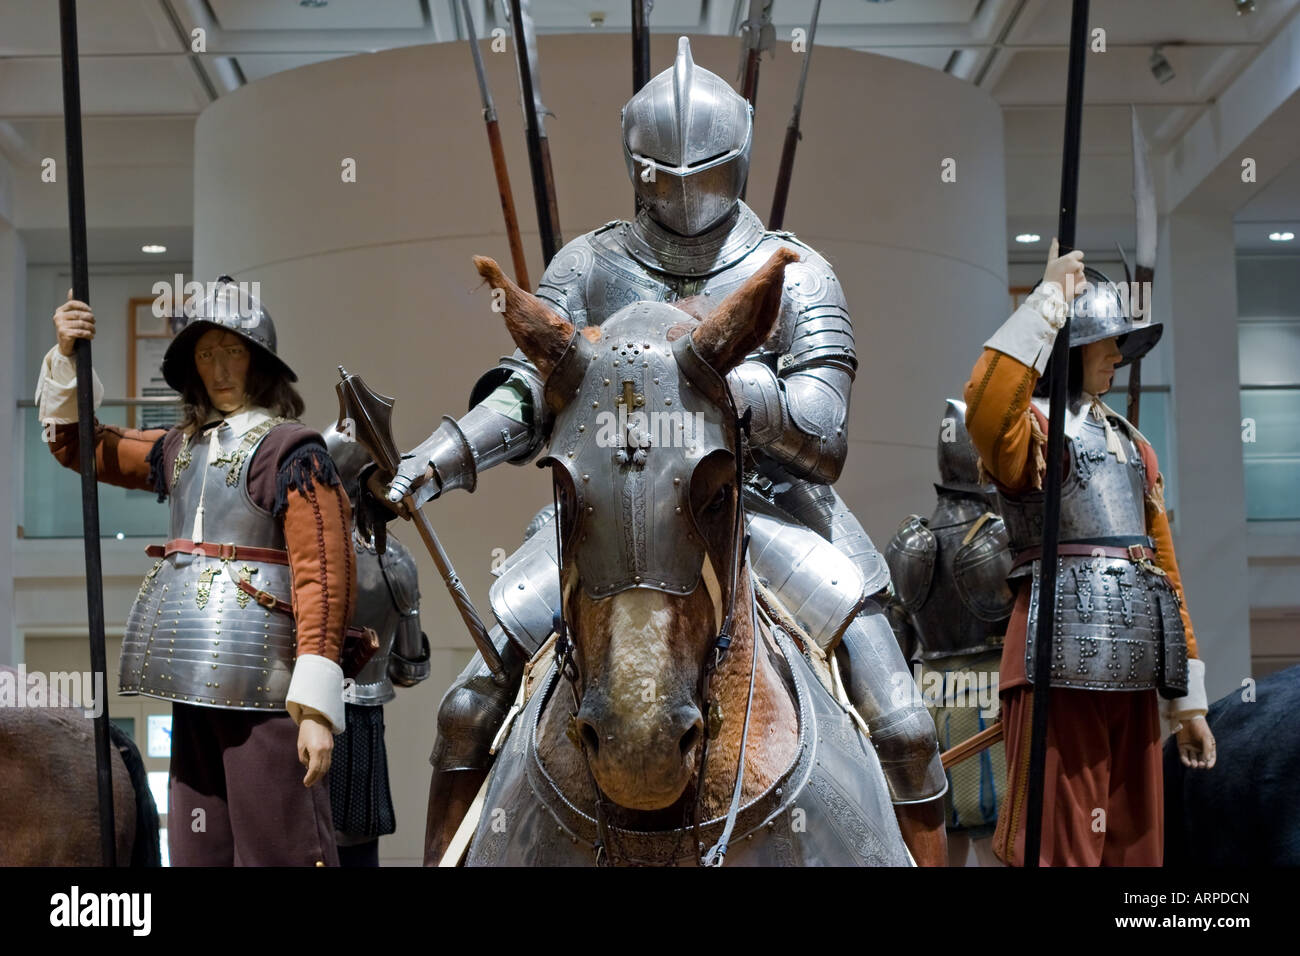 Suit Of Armor Horse Stock Photos & Suit Of Armor Horse Stock Images ...